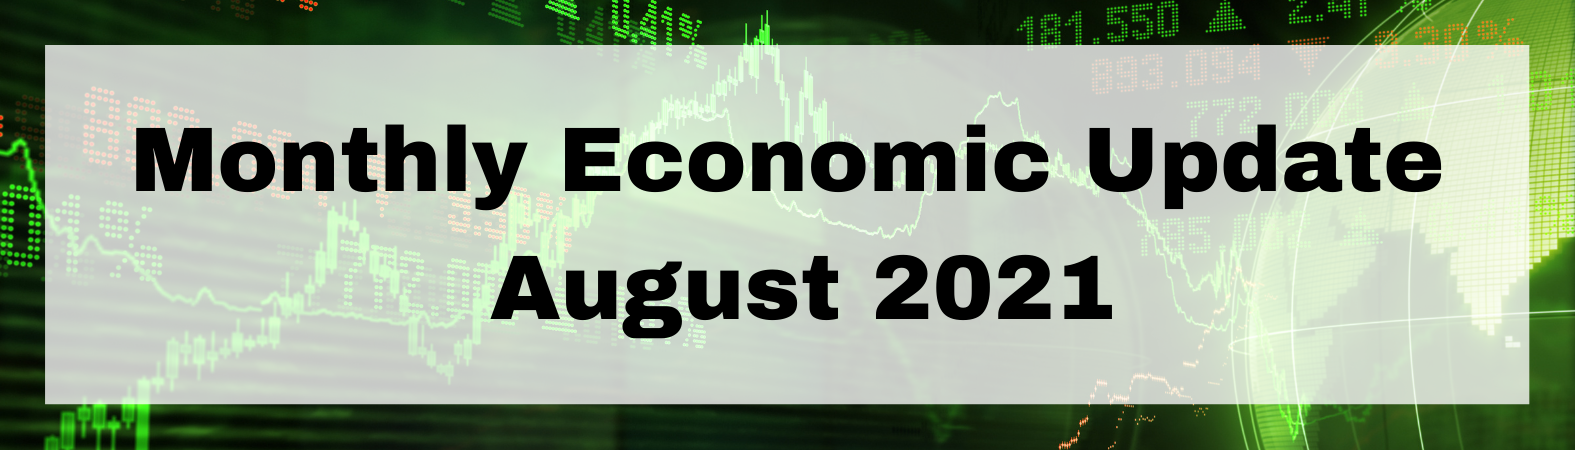 Monthly Economic Update August 2021 Thumbnail